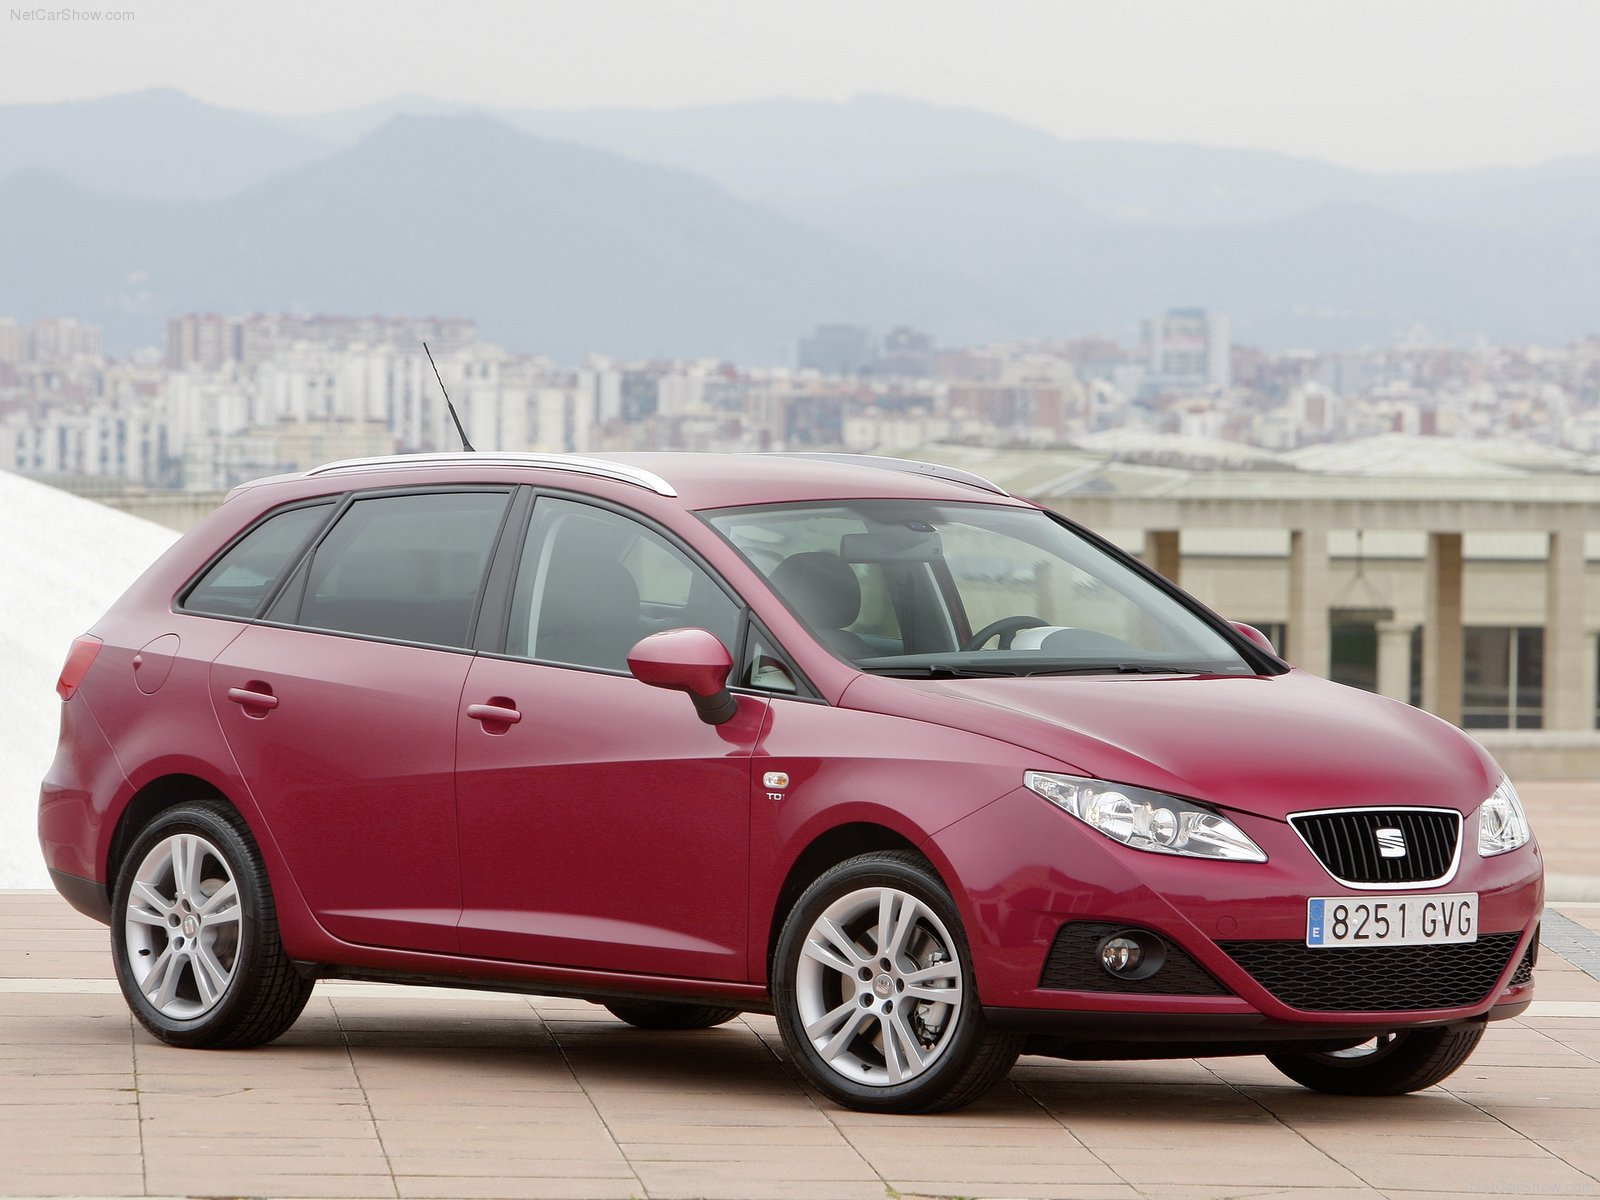 seat ibiza st picture 73623 seat photo gallery. Black Bedroom Furniture Sets. Home Design Ideas